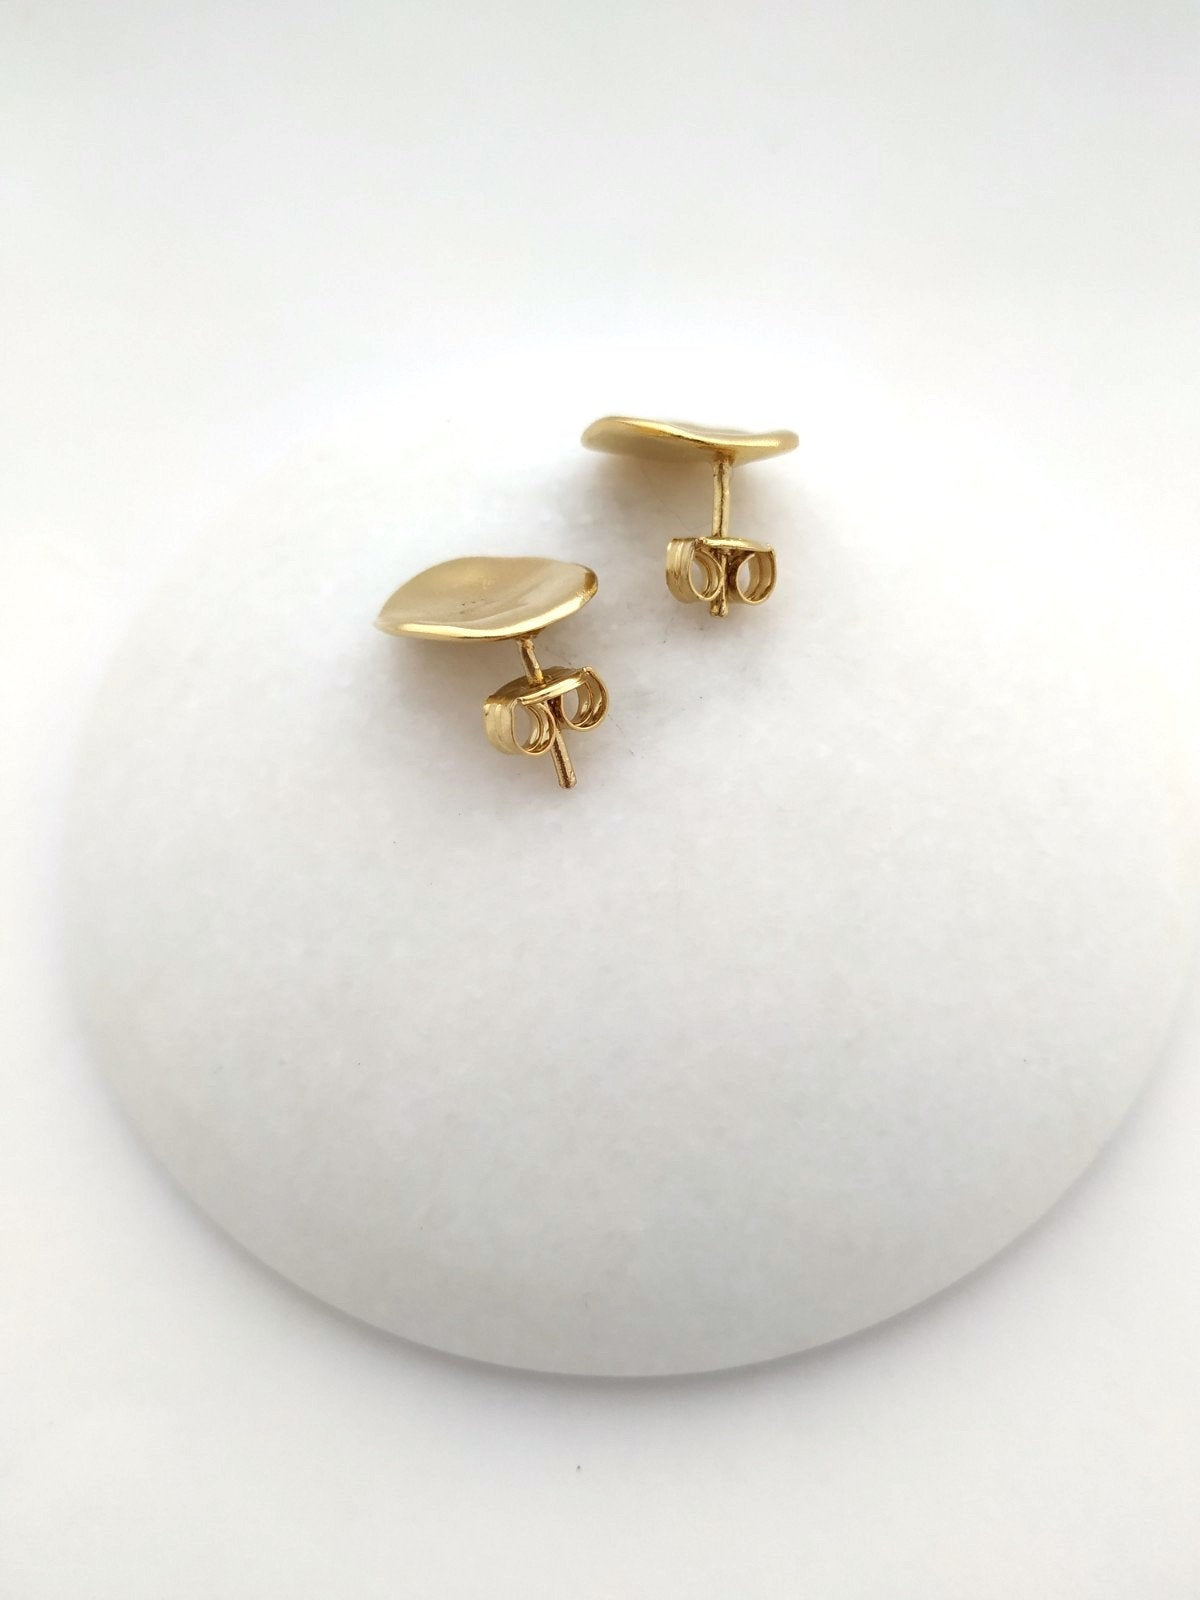 contemporary studs, gold plated - oval stud earrings, gold